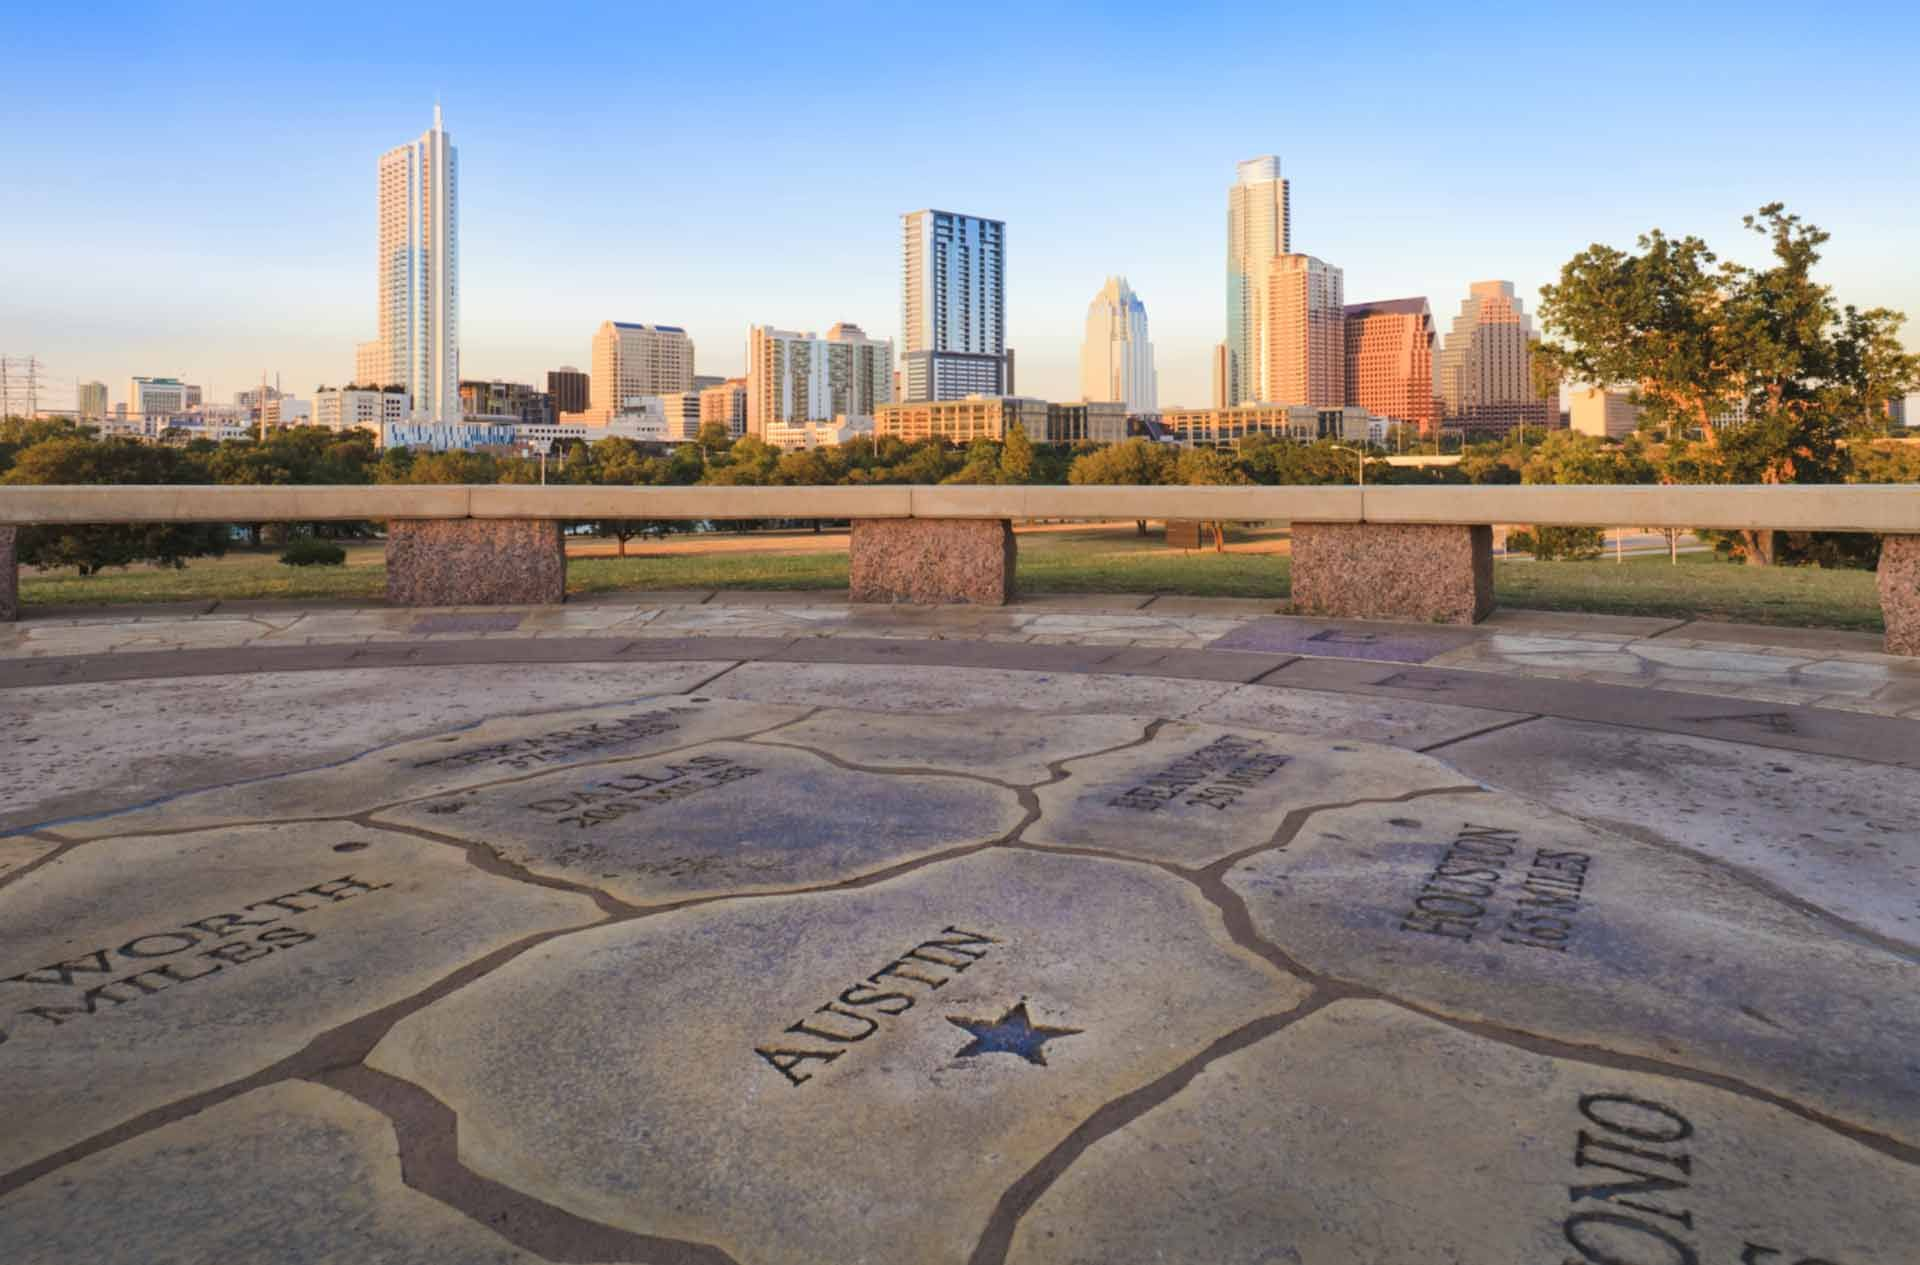 Amazing Scavenger Quest in Austin or City of Choice Image